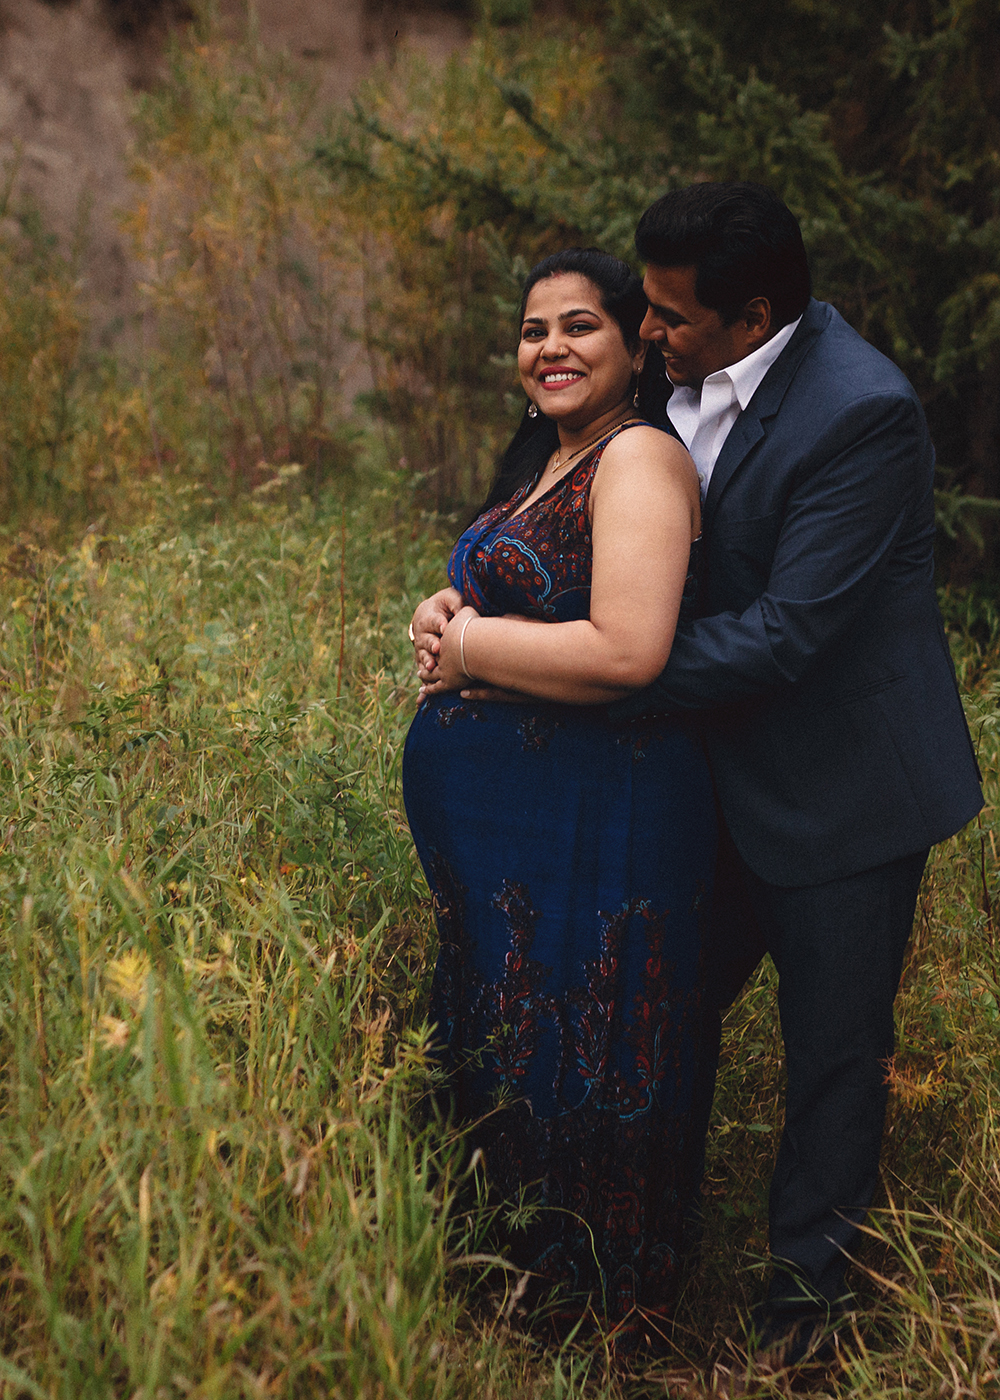 Edmonton Maternity Photographer_Jyoti Sneak Peek 2.jpg